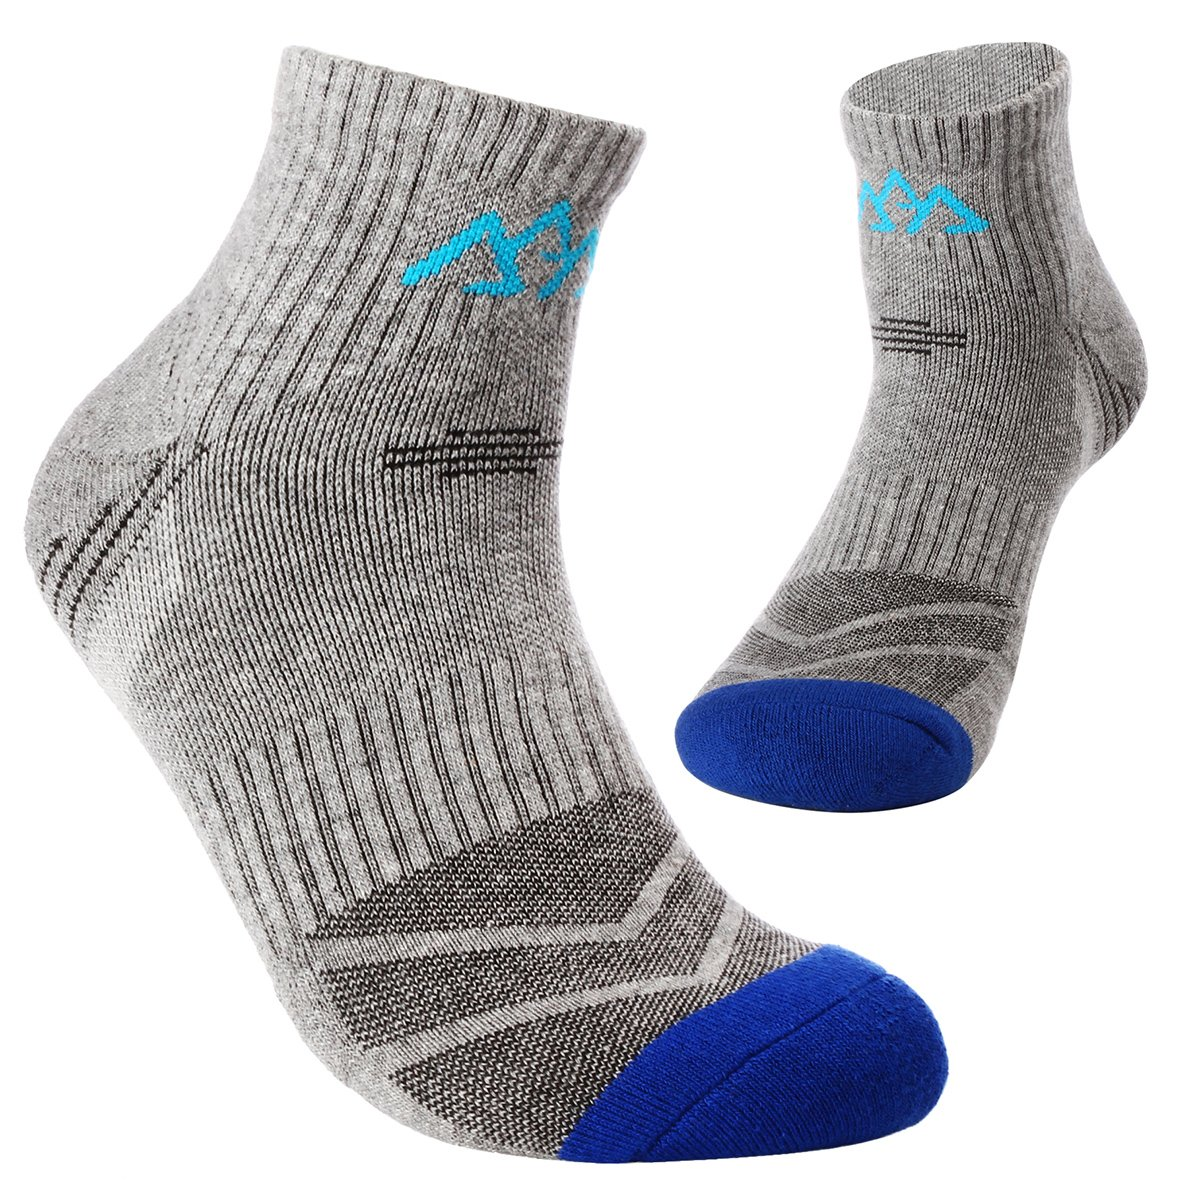 Will Well 5 Pack Mens Hiking Socks, Micro Crew Half Thickness Cushion Running Sports Performance Summer by Will Well (Image #2)